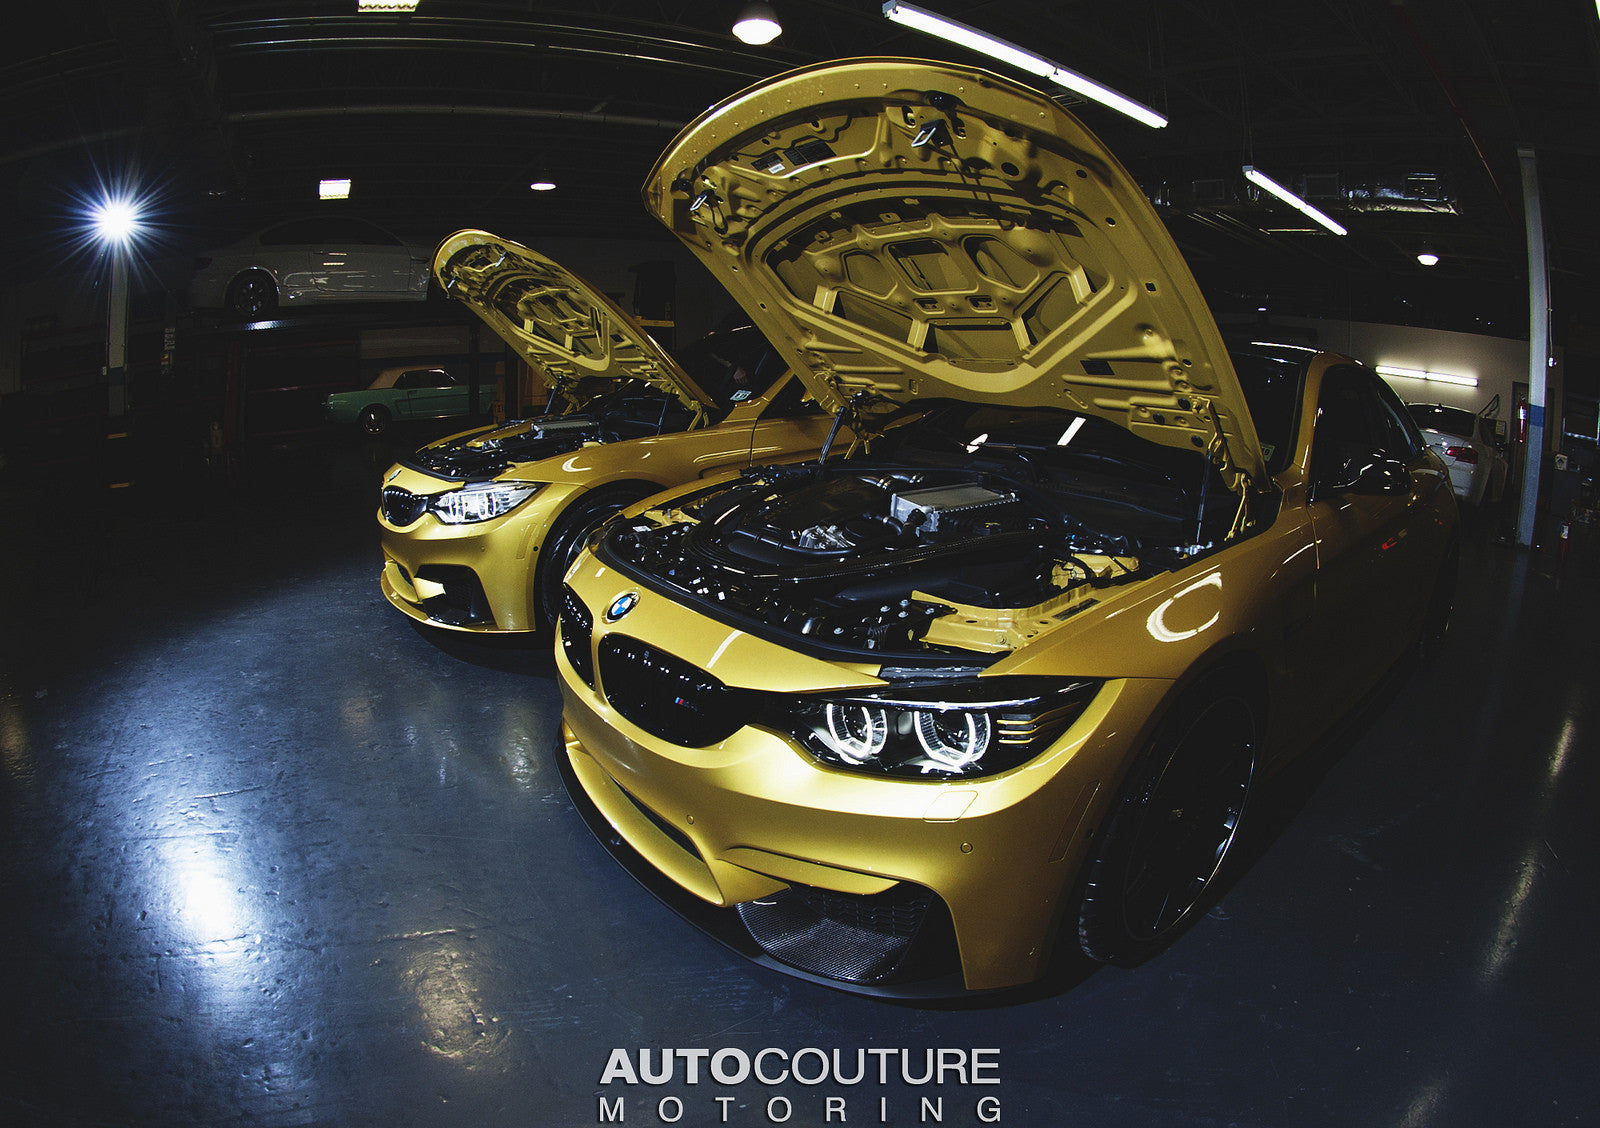 BMW 4-Series / F8x M3 & M4 BLK-OUT LED Headlights